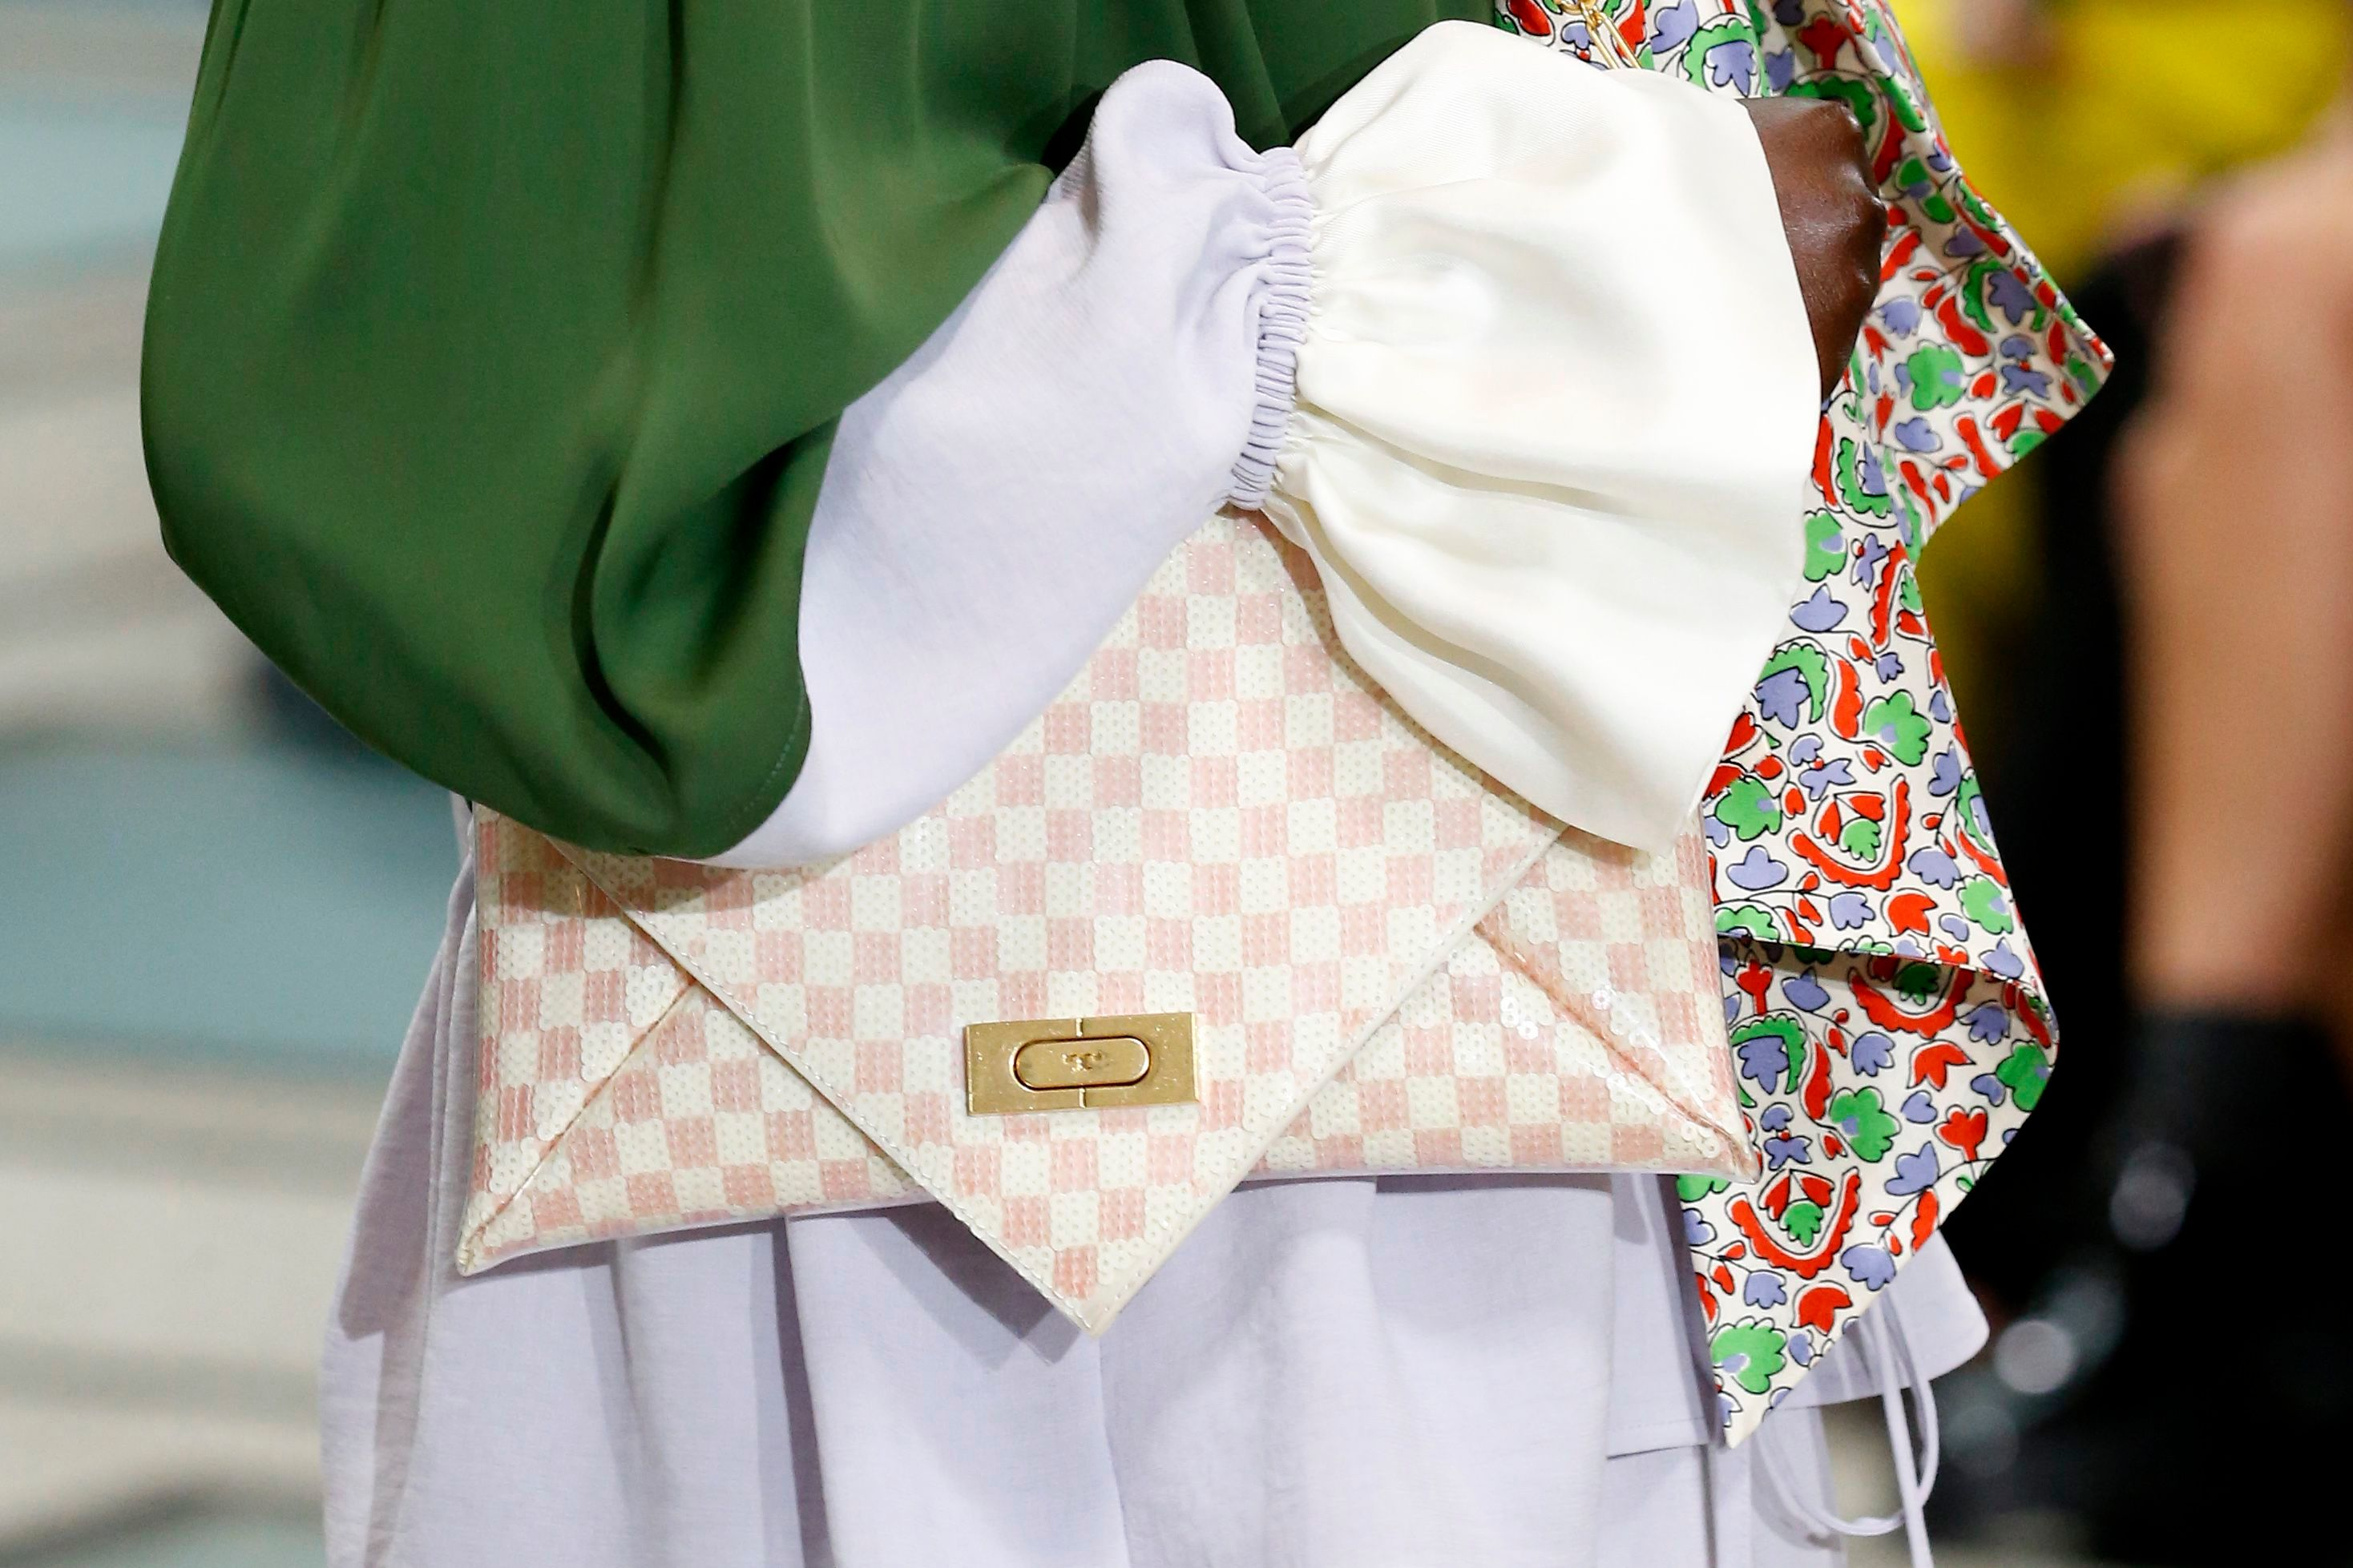 Details at Tory Burch RTW Spring 2020